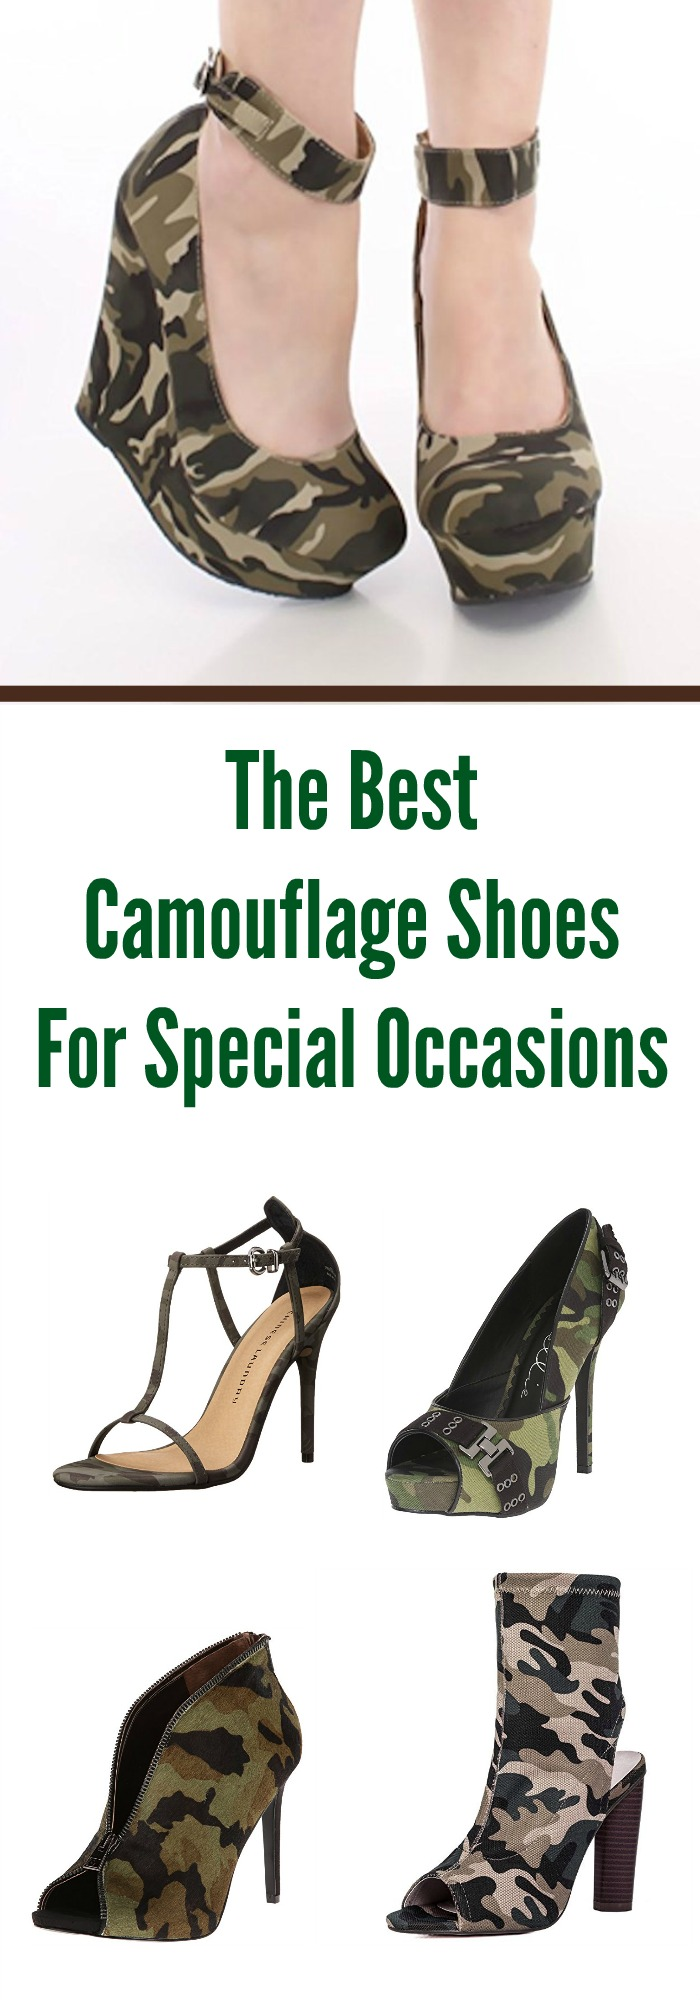 The Best Camouflage Shoes For Special Occasions